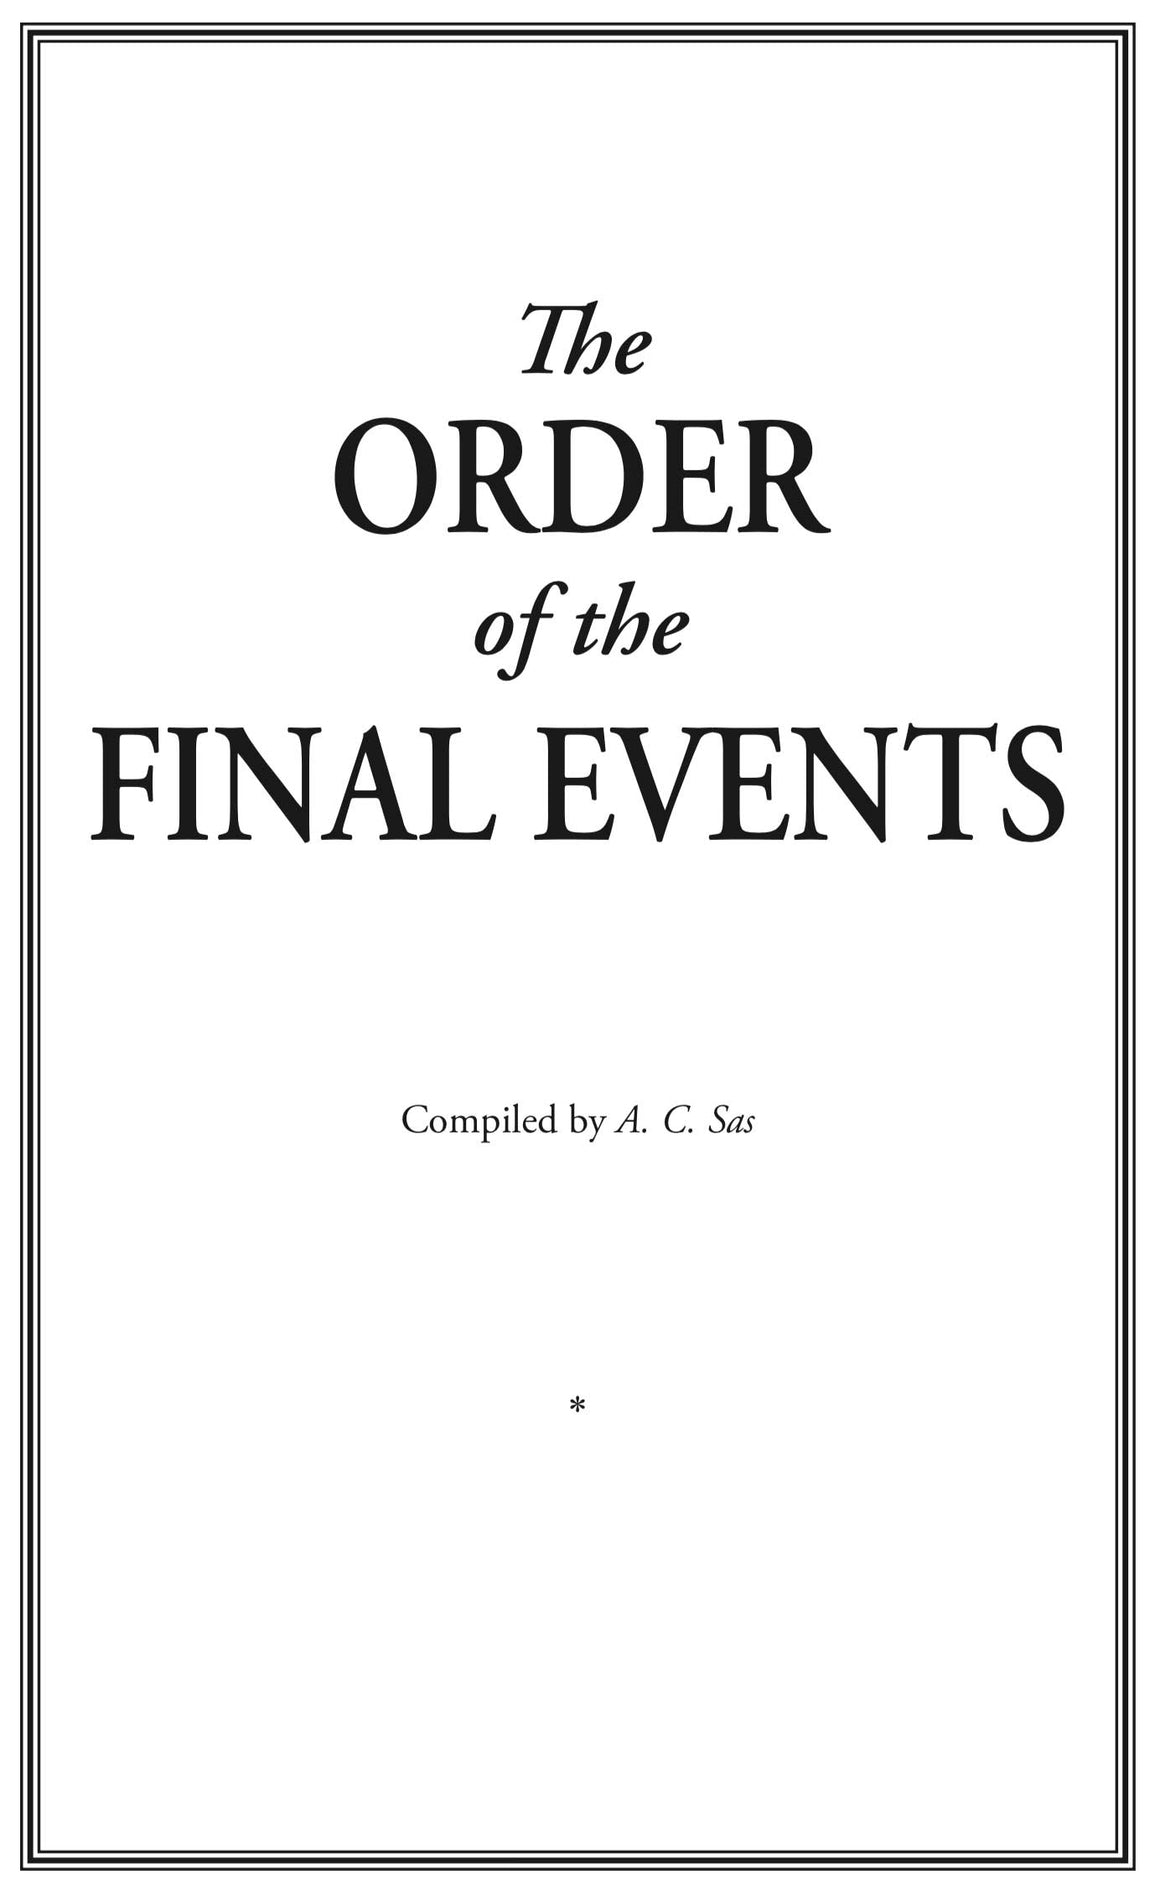 The Order of the Final Events